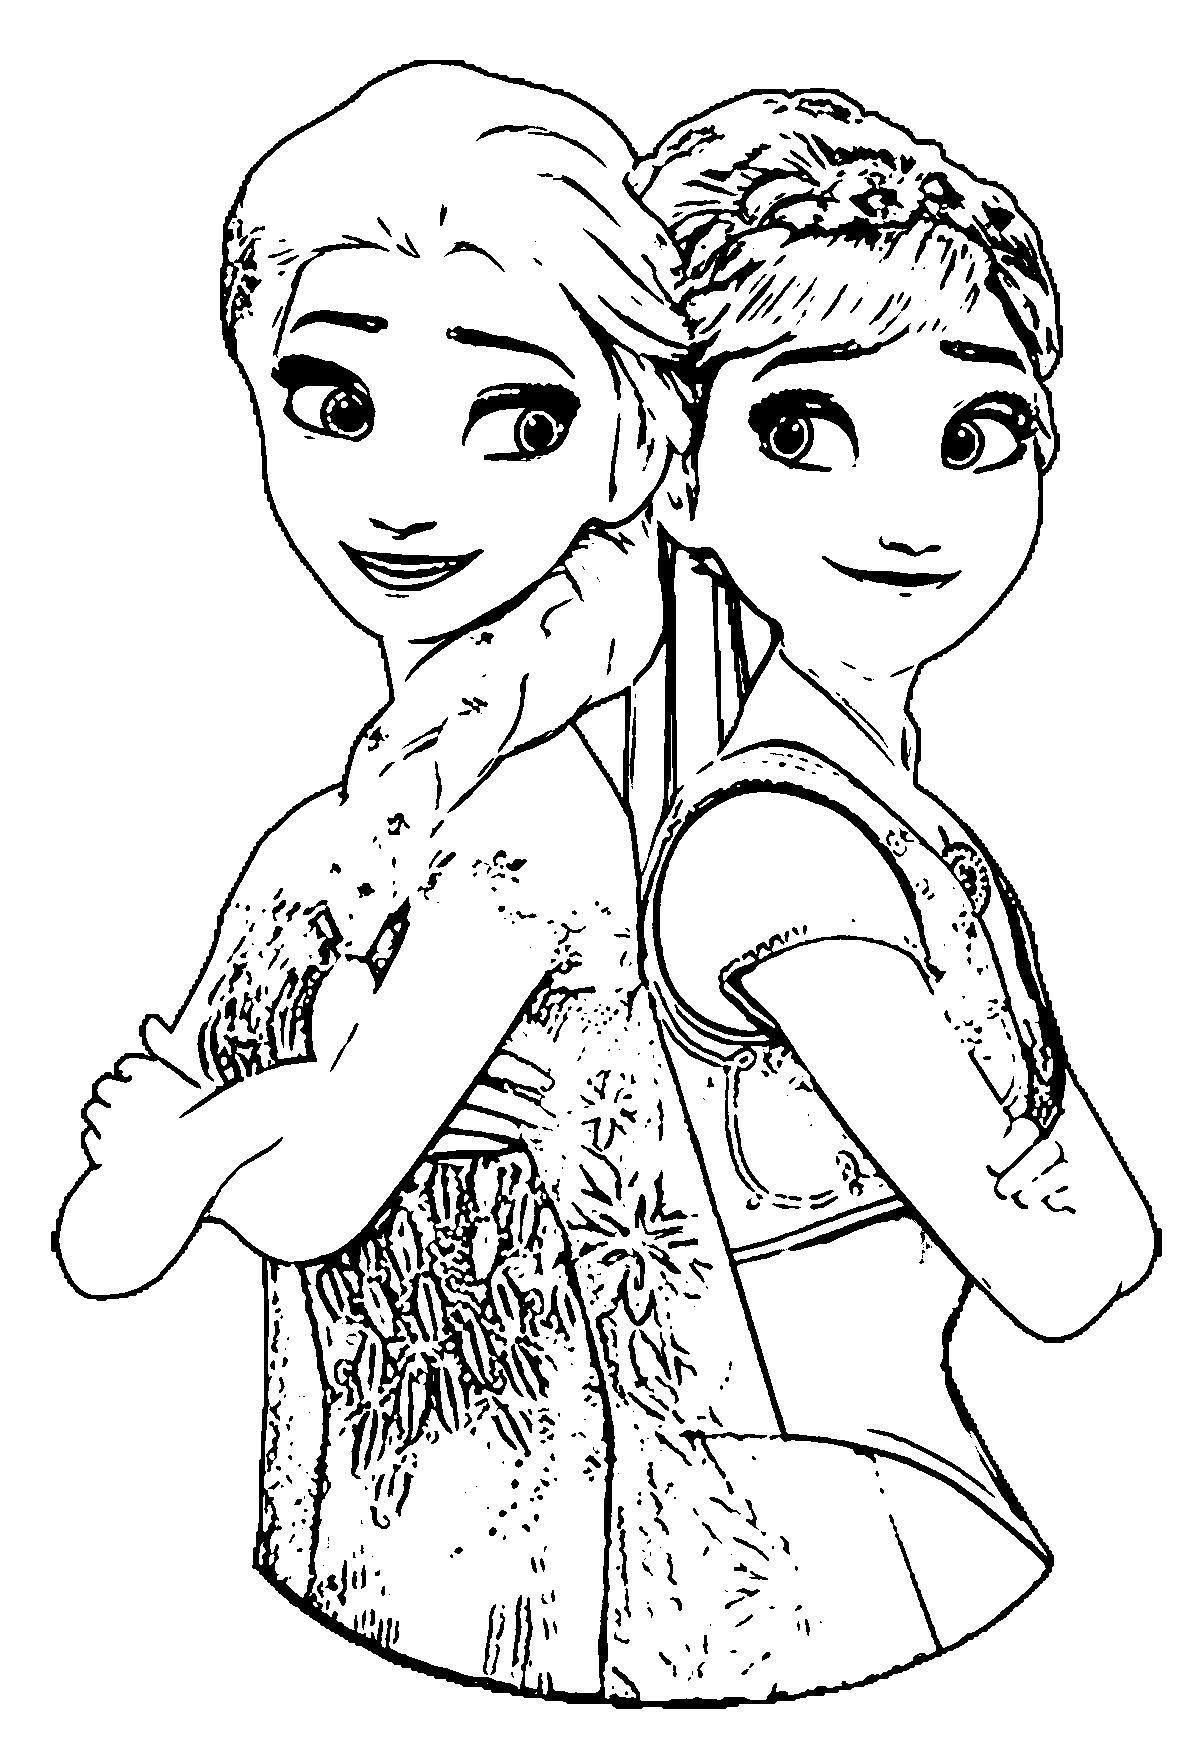 coloring page elsa free printable elsa coloring pages for kids best elsa page coloring 1 3